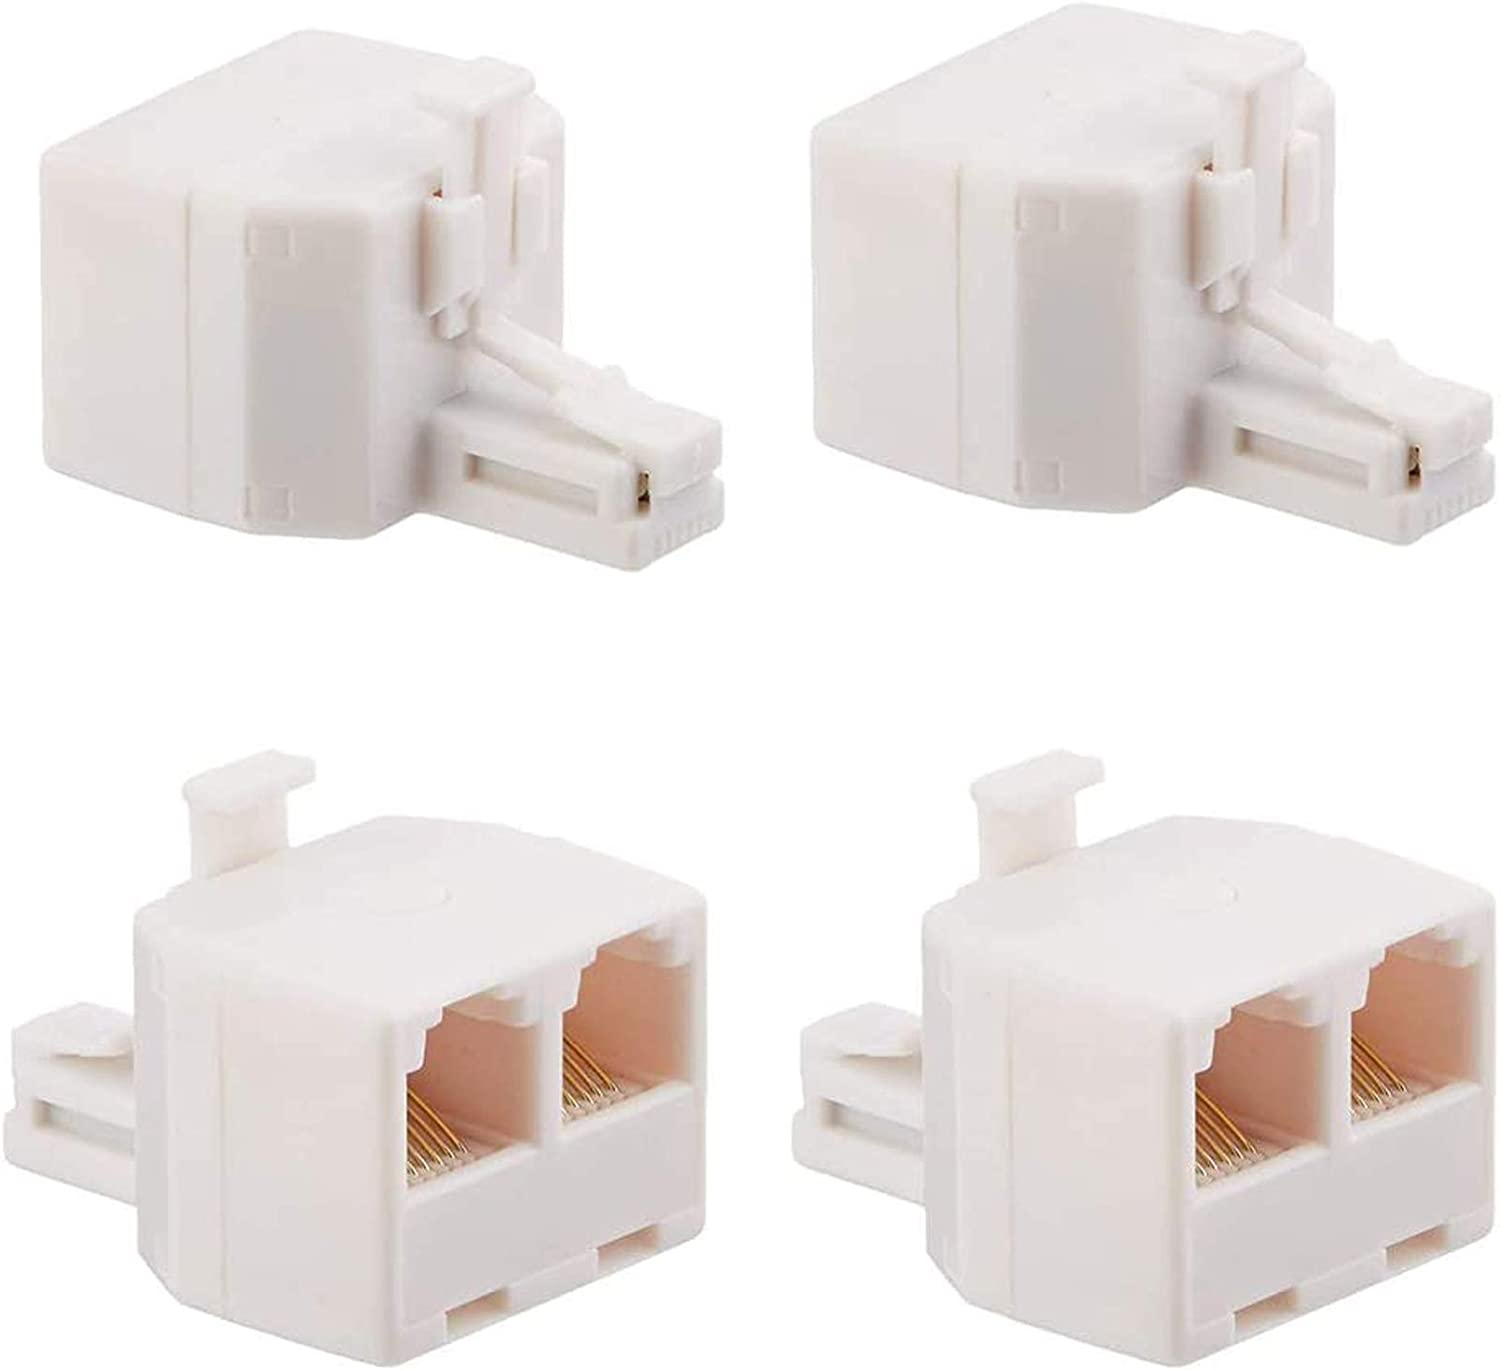 Uvital RJ11 Duplex Wall Jack Adapter Dual Phone Line Splitter Wall Jack Plug 1 to 2 Modular Converter Adapter for Office Home ADSL DSL Fax Model Cordless Phone System, White(4 Packs)